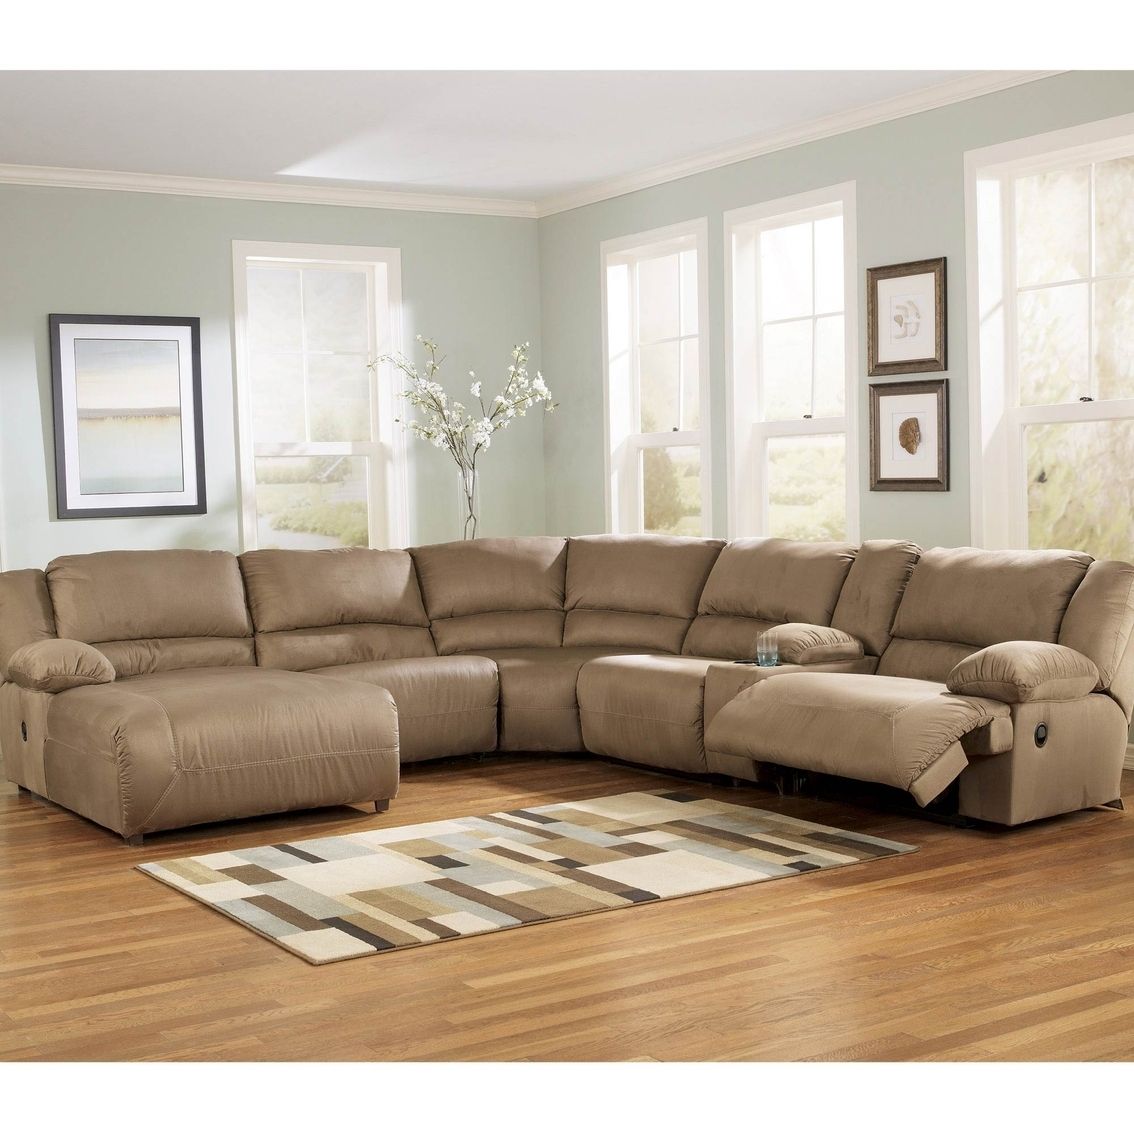 Fashionable Chaise Recliners Within Ashley Hogan Sectional With Two Recliners And Right Arm Facing (View 12 of 15)